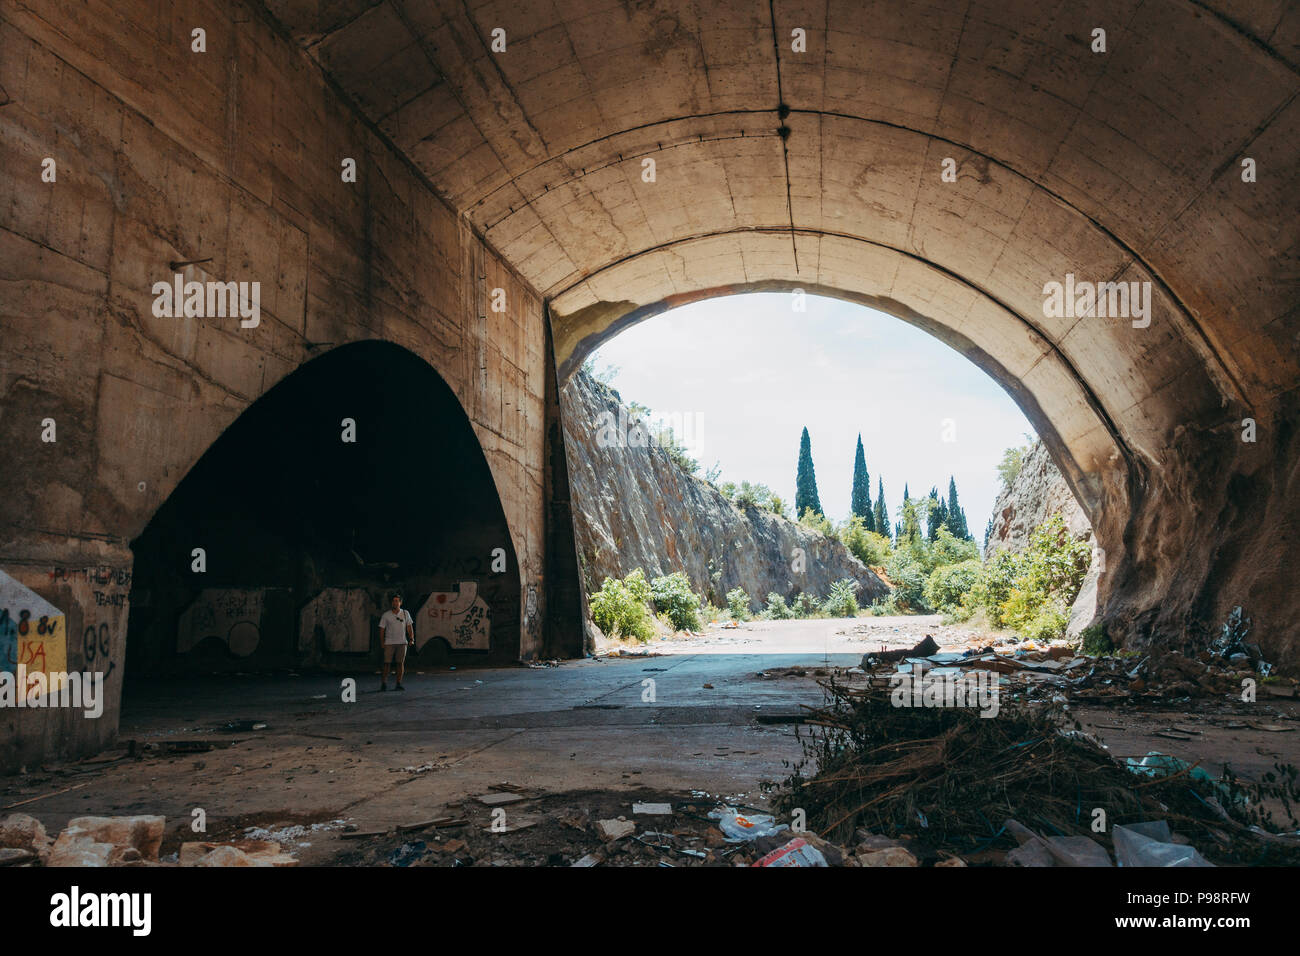 a tourist explores an abandoned aircraft hangar in the mountainside at Mostar Airport, Bosnia and Herzegovina Stock Photo